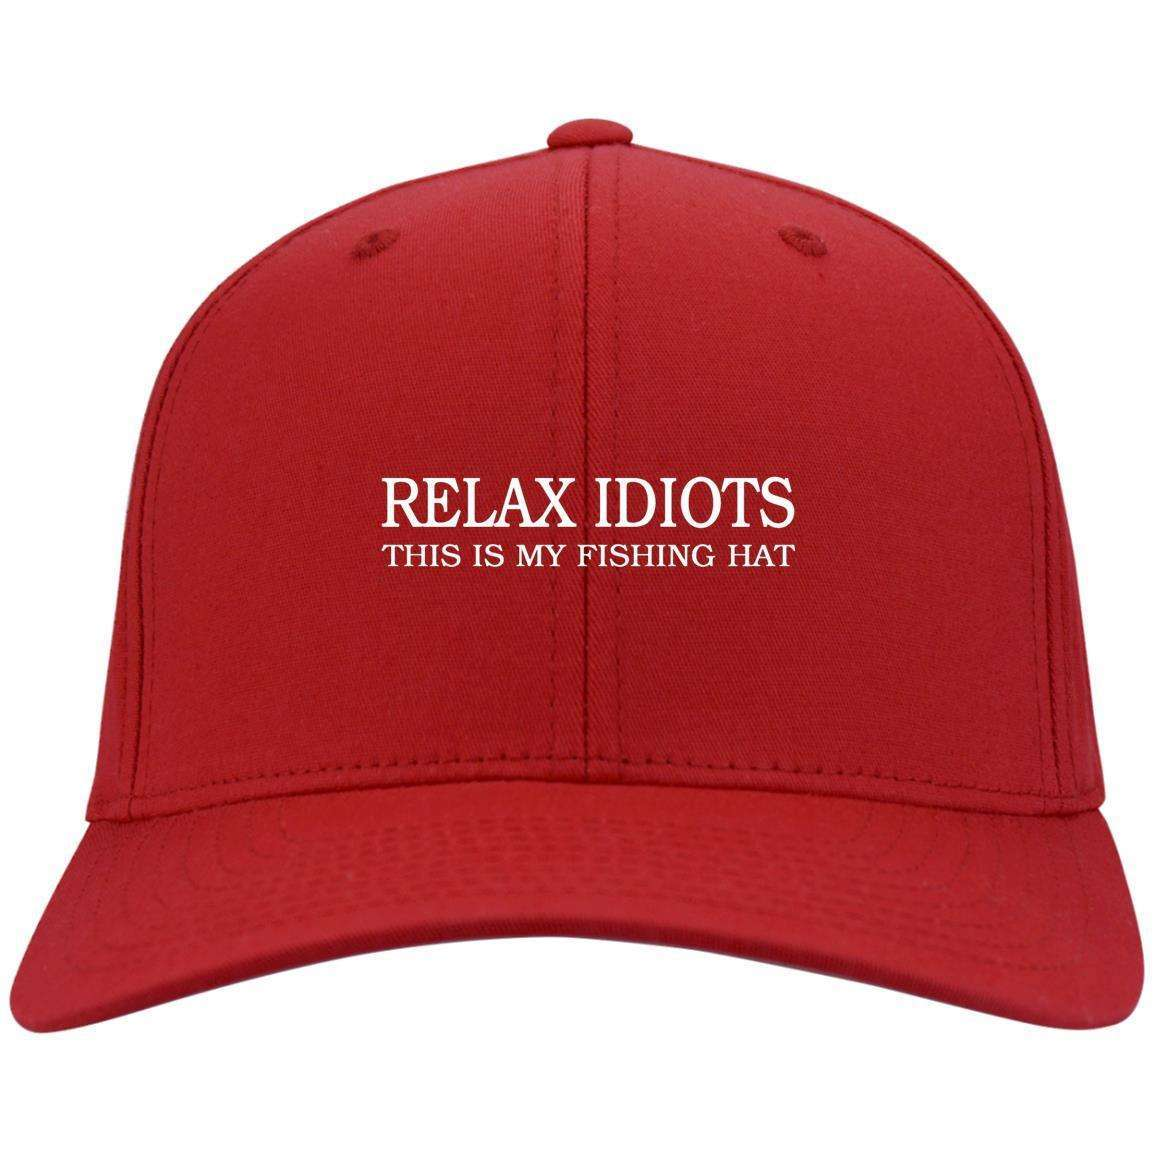 Relax Idiots This Is My Fishing Hat - Hat